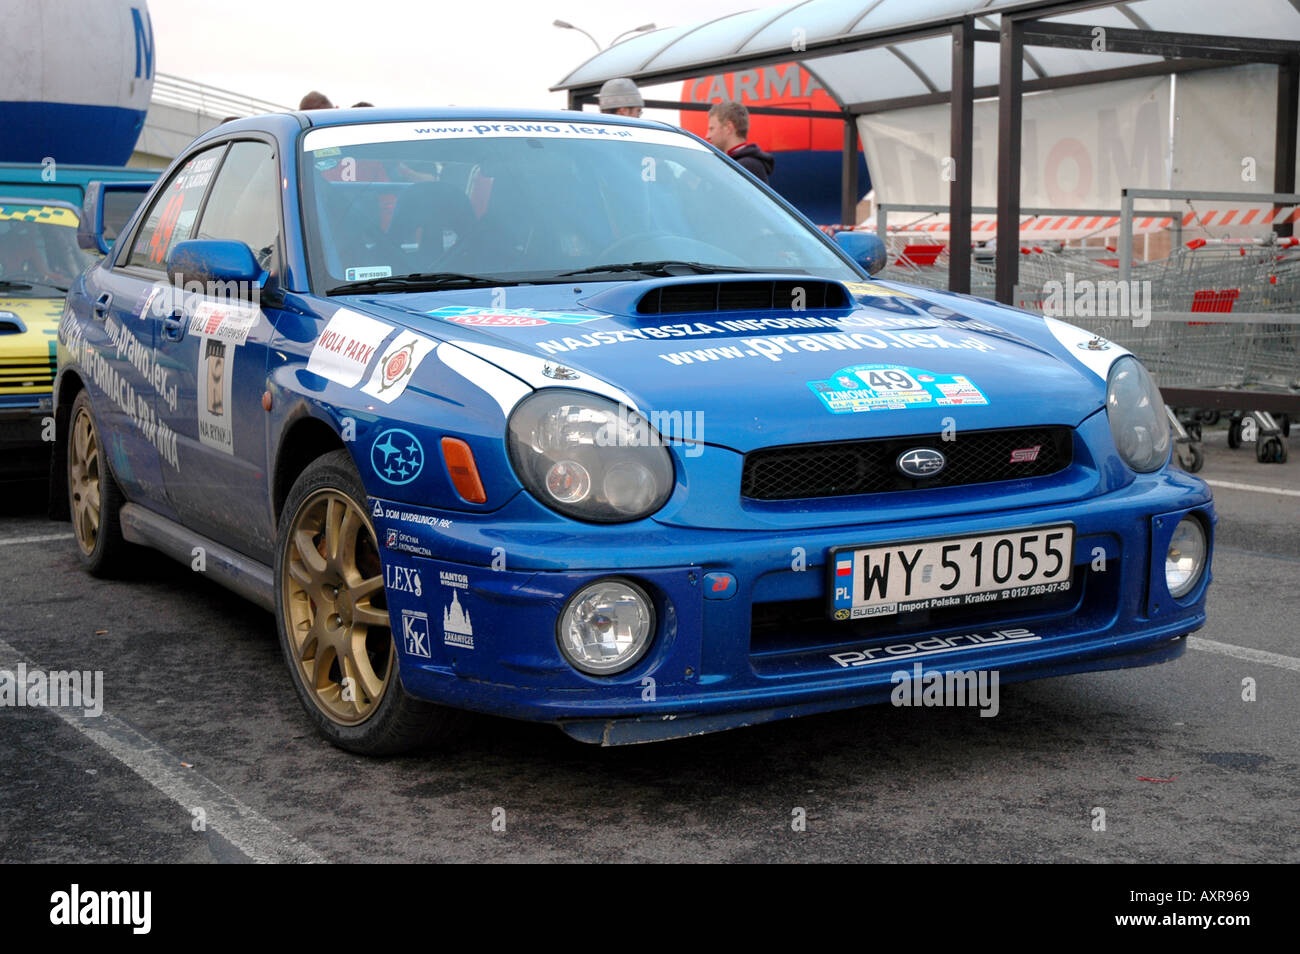 Subaru Racing Car Street Racing Car In Warsaw Poland Stock Photo Alamy